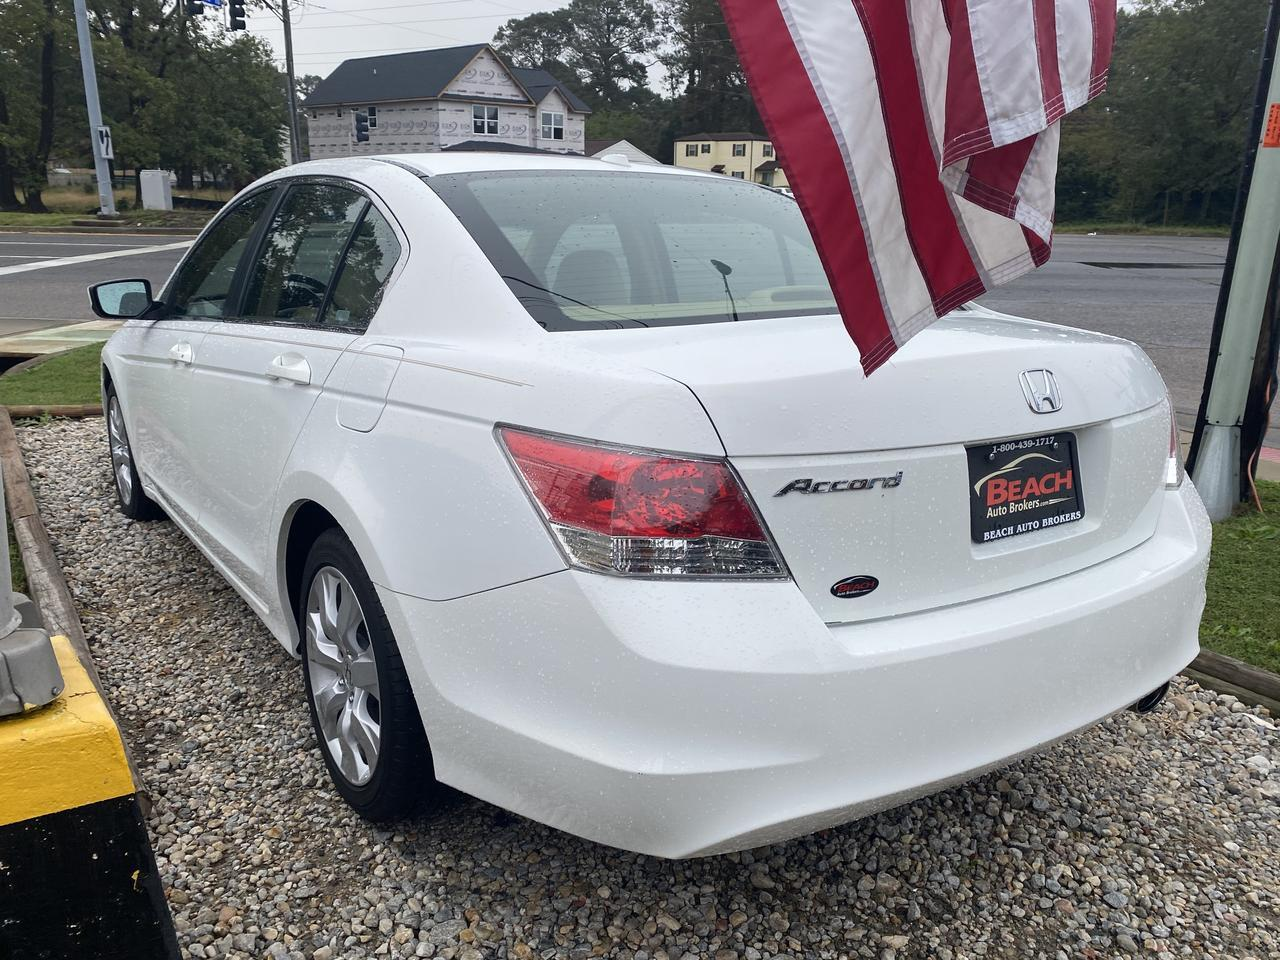 2008 HONDA ACCORD EX-L, WARRANTY, LEATHER, HEATED SEATS, SUNROOF, AUX PORT, CLEAN CARFAX, 1 OWNER, LOW MILES! Norfolk VA